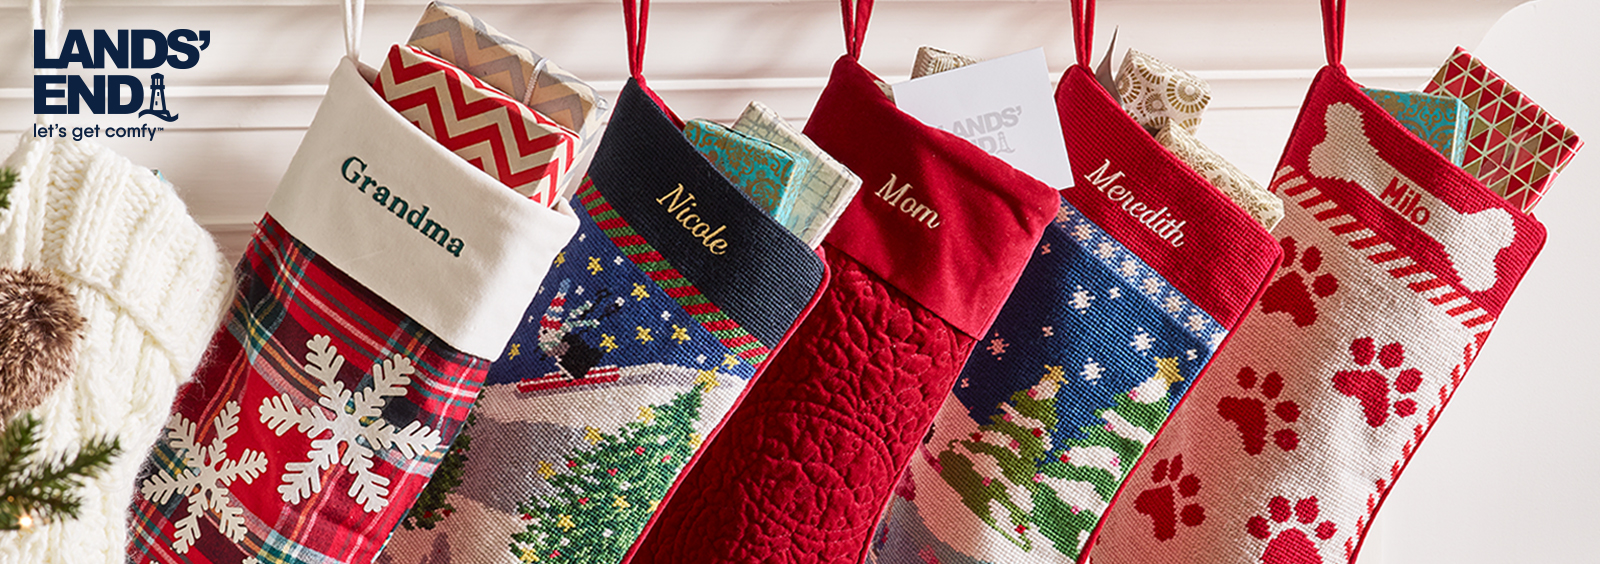 Stocking Stuffers for St. Nicholas on December 6th